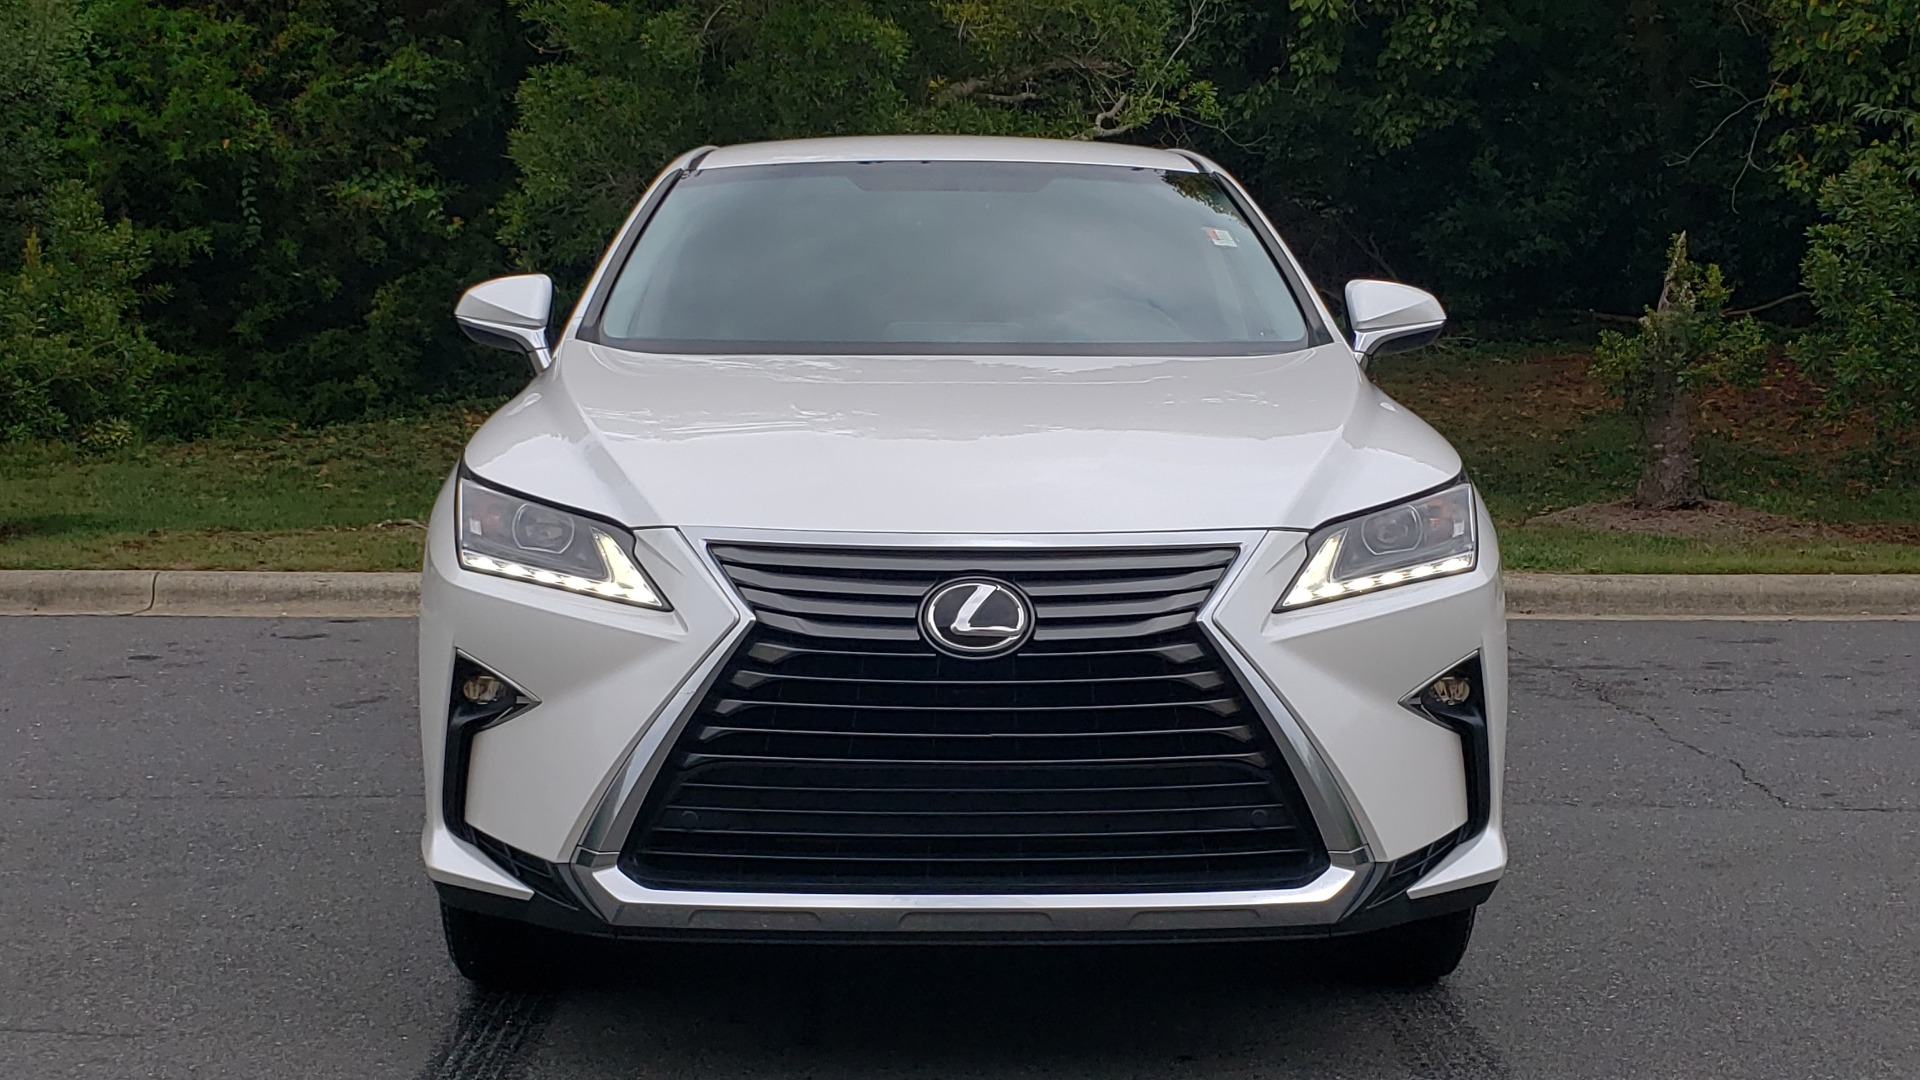 Used 2016 Lexus RX 350 FWD / 4-DR / 3.5L V6 / 8-SPD AUTO / LEATHER / REARVIEW for sale $29,795 at Formula Imports in Charlotte NC 28227 22